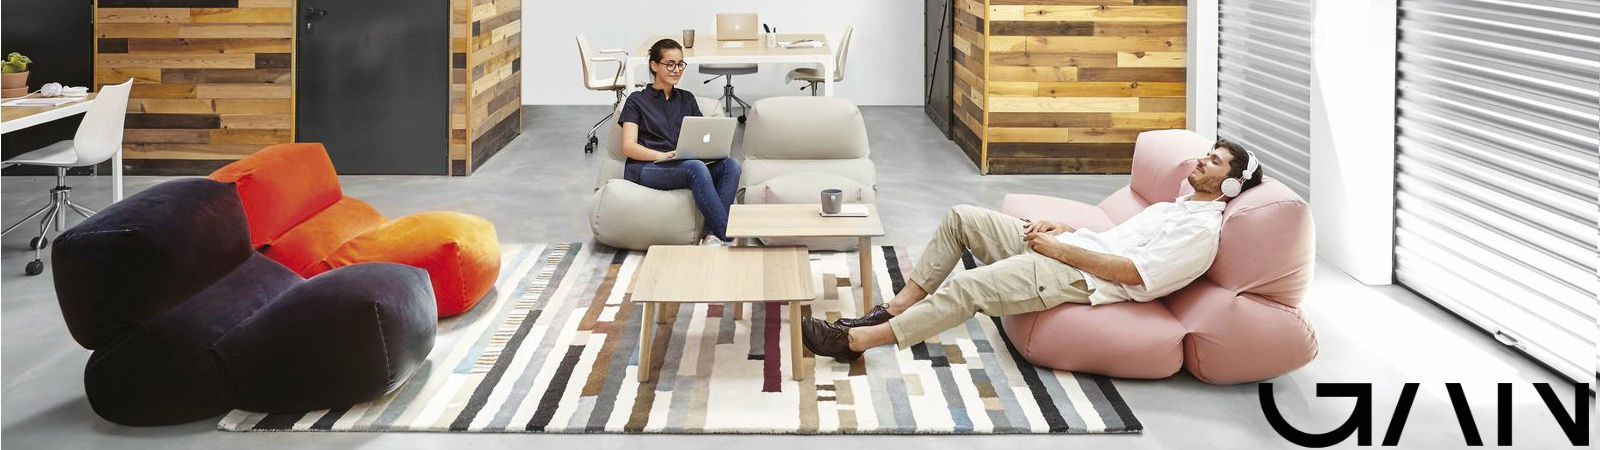 Gan Rugs available at Sportique.com